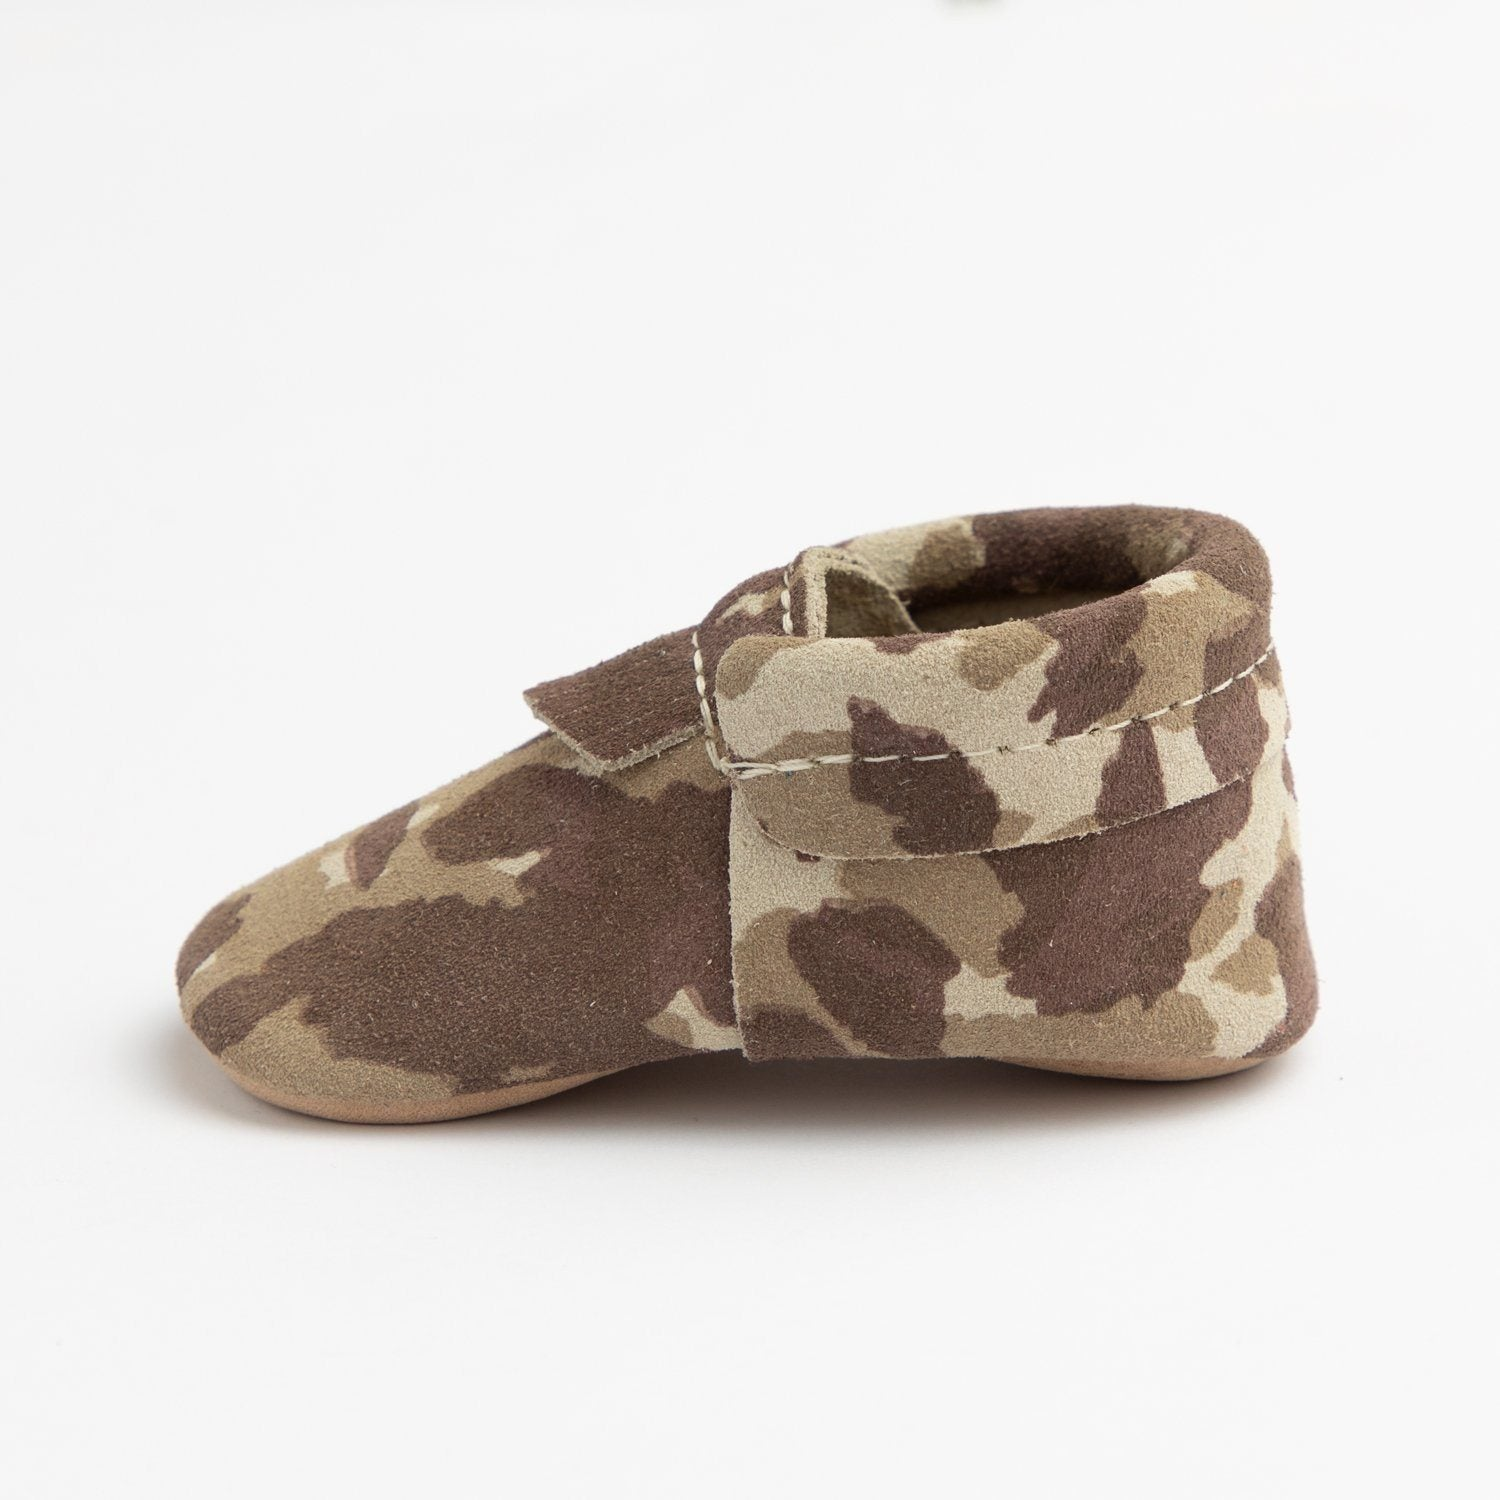 Brown Suede Camo City Mocc City Moccs Soft Soles